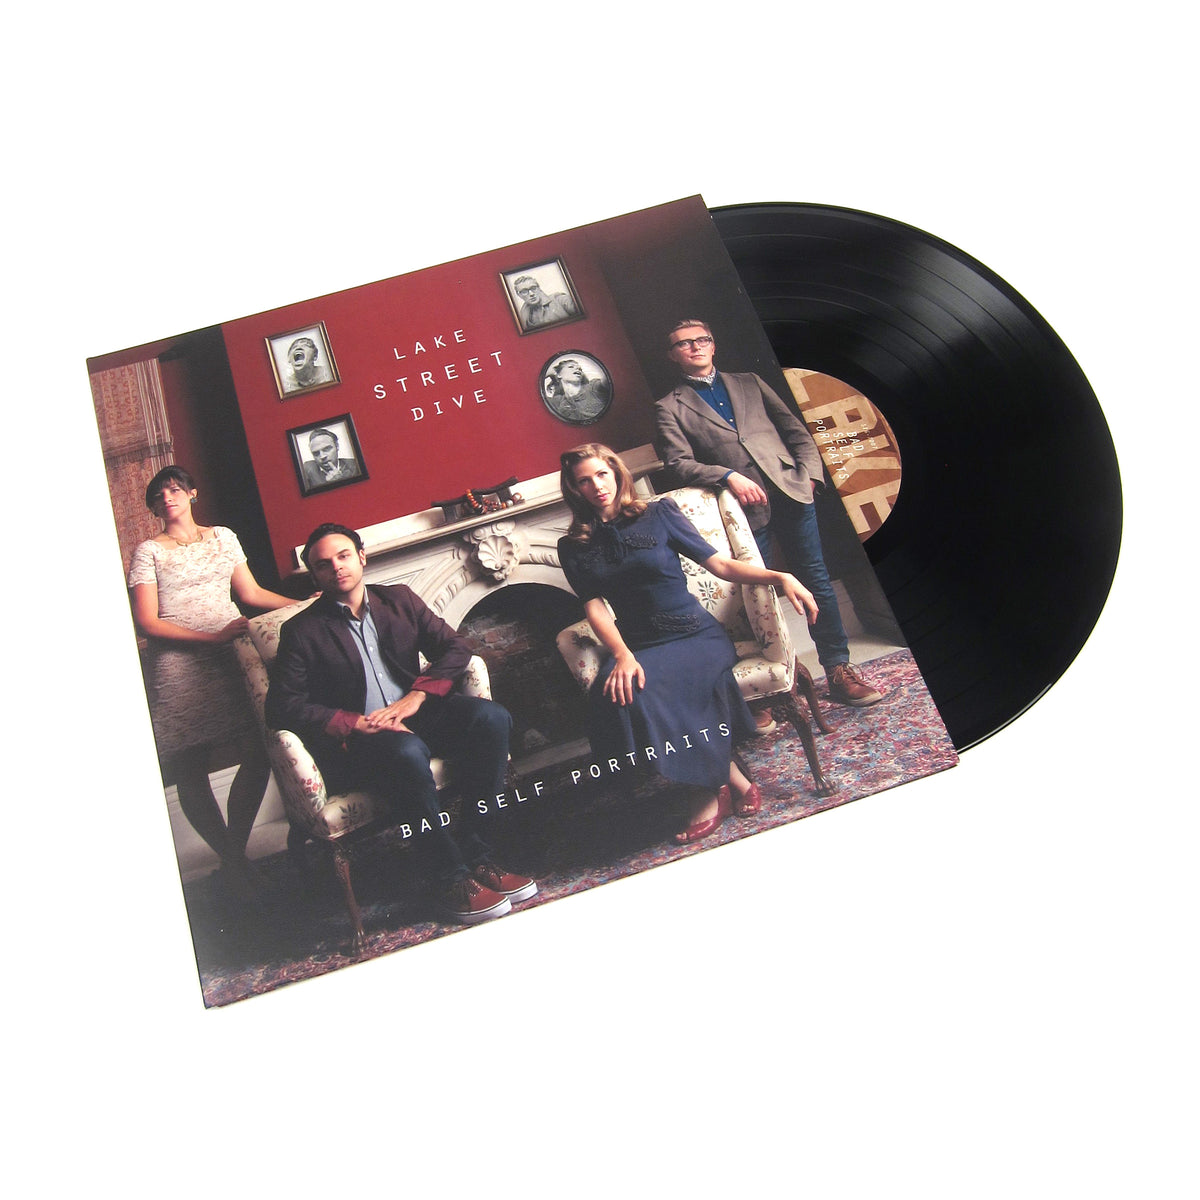 Lake Street Dive: Bad Self Portraits Vinyl LP